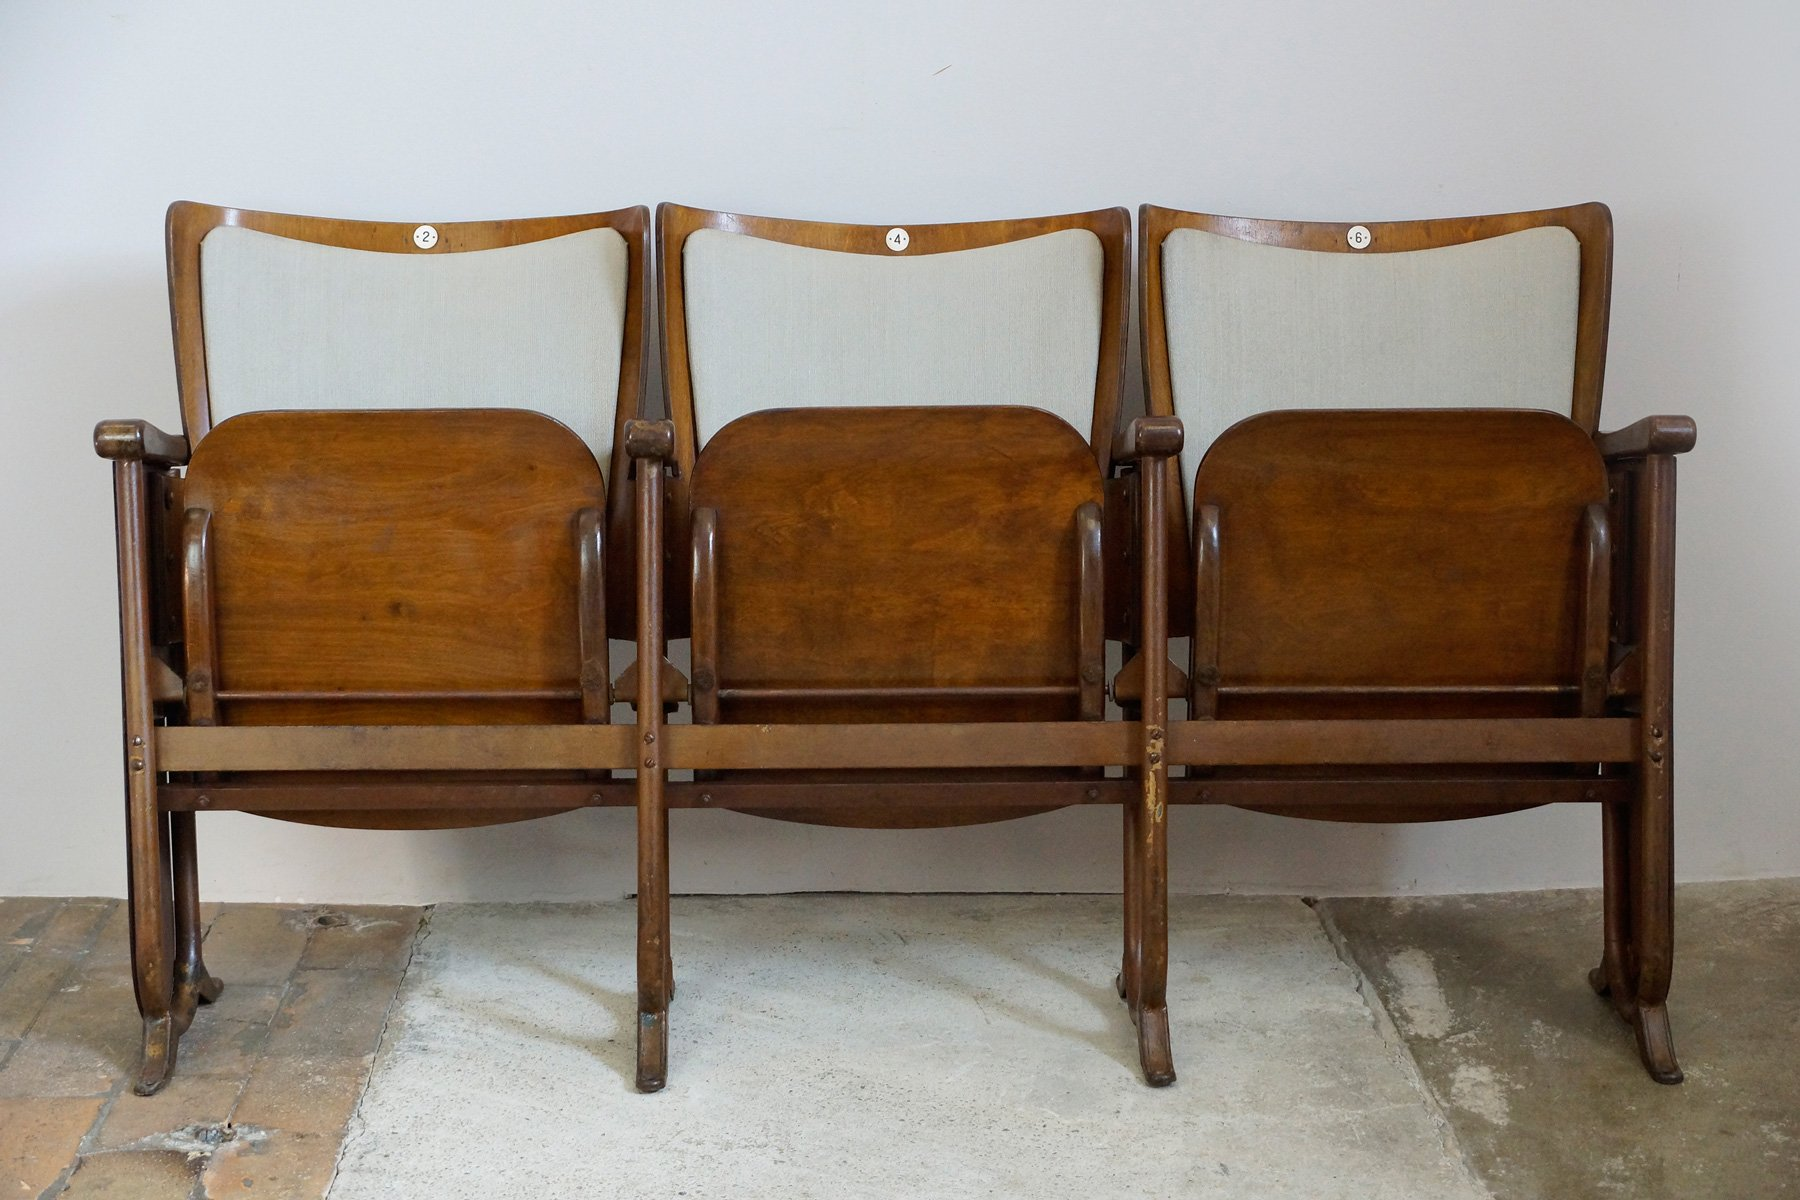 Art Deco 3 Seater Folding Cinema Bench From Fa Fibrocit Brussels Belgium 1930s For Sale At Pamono